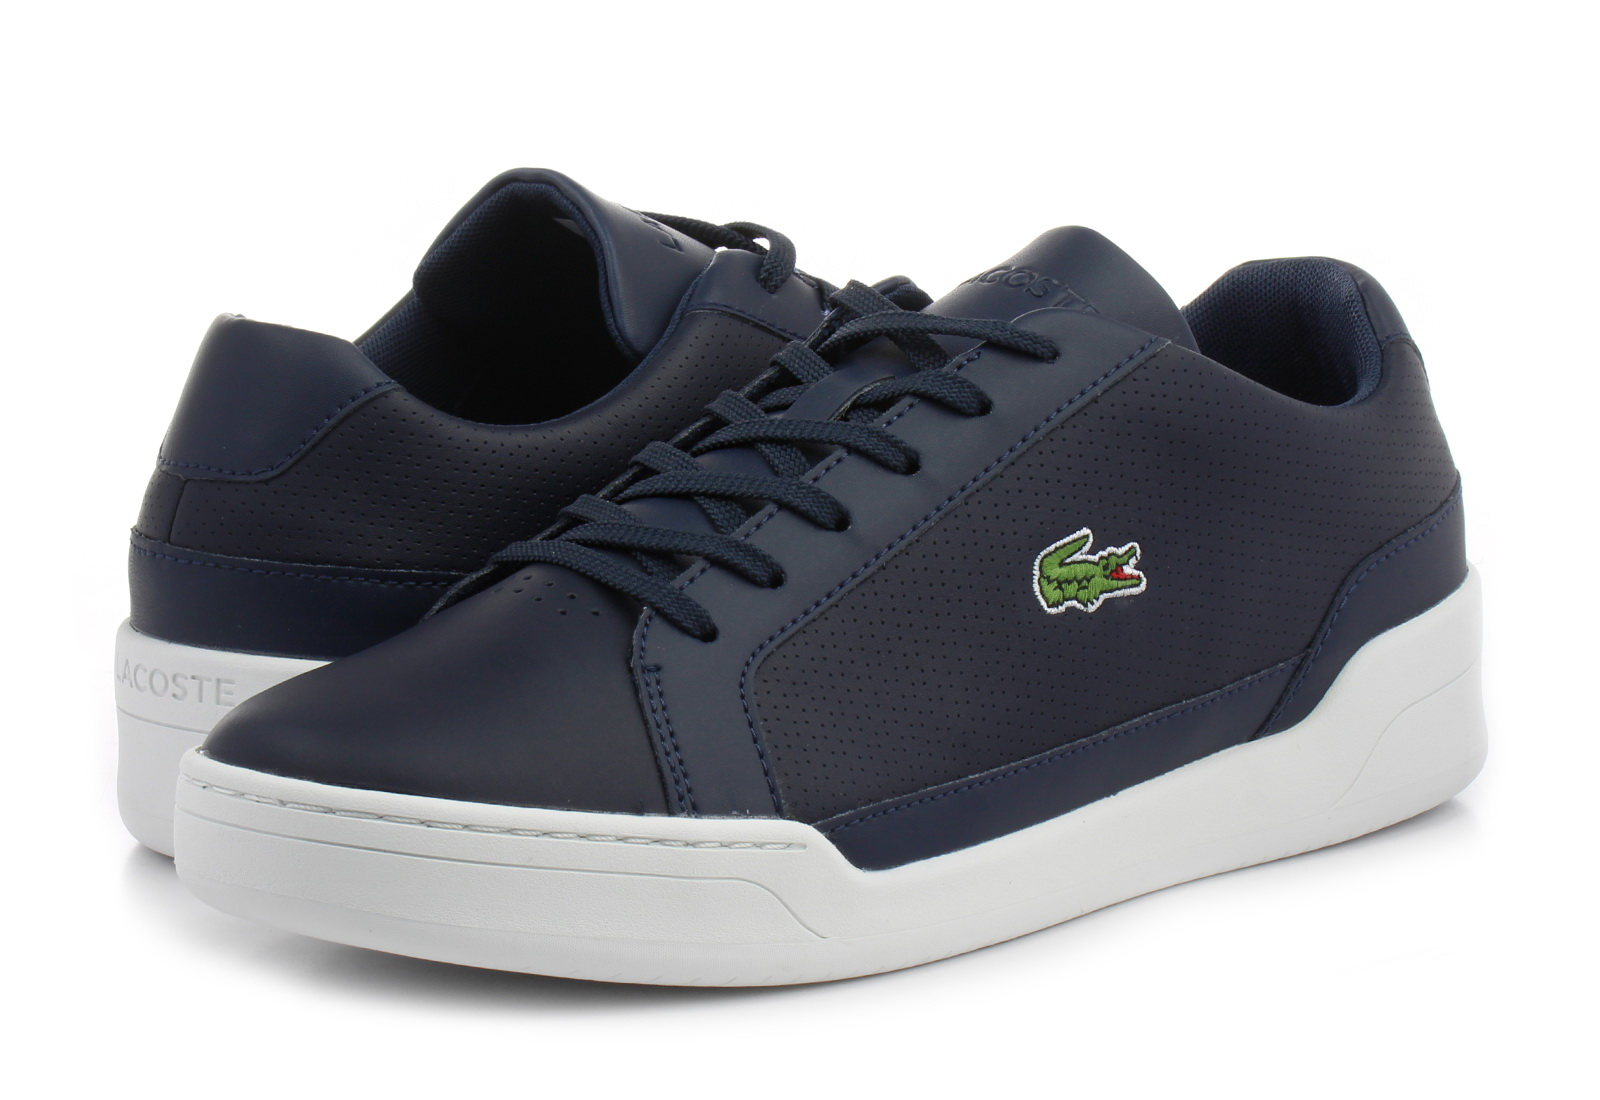 Lacoste Shoes Challenge 191SMA0018 092 Online shop for sneakers, shoes and boots